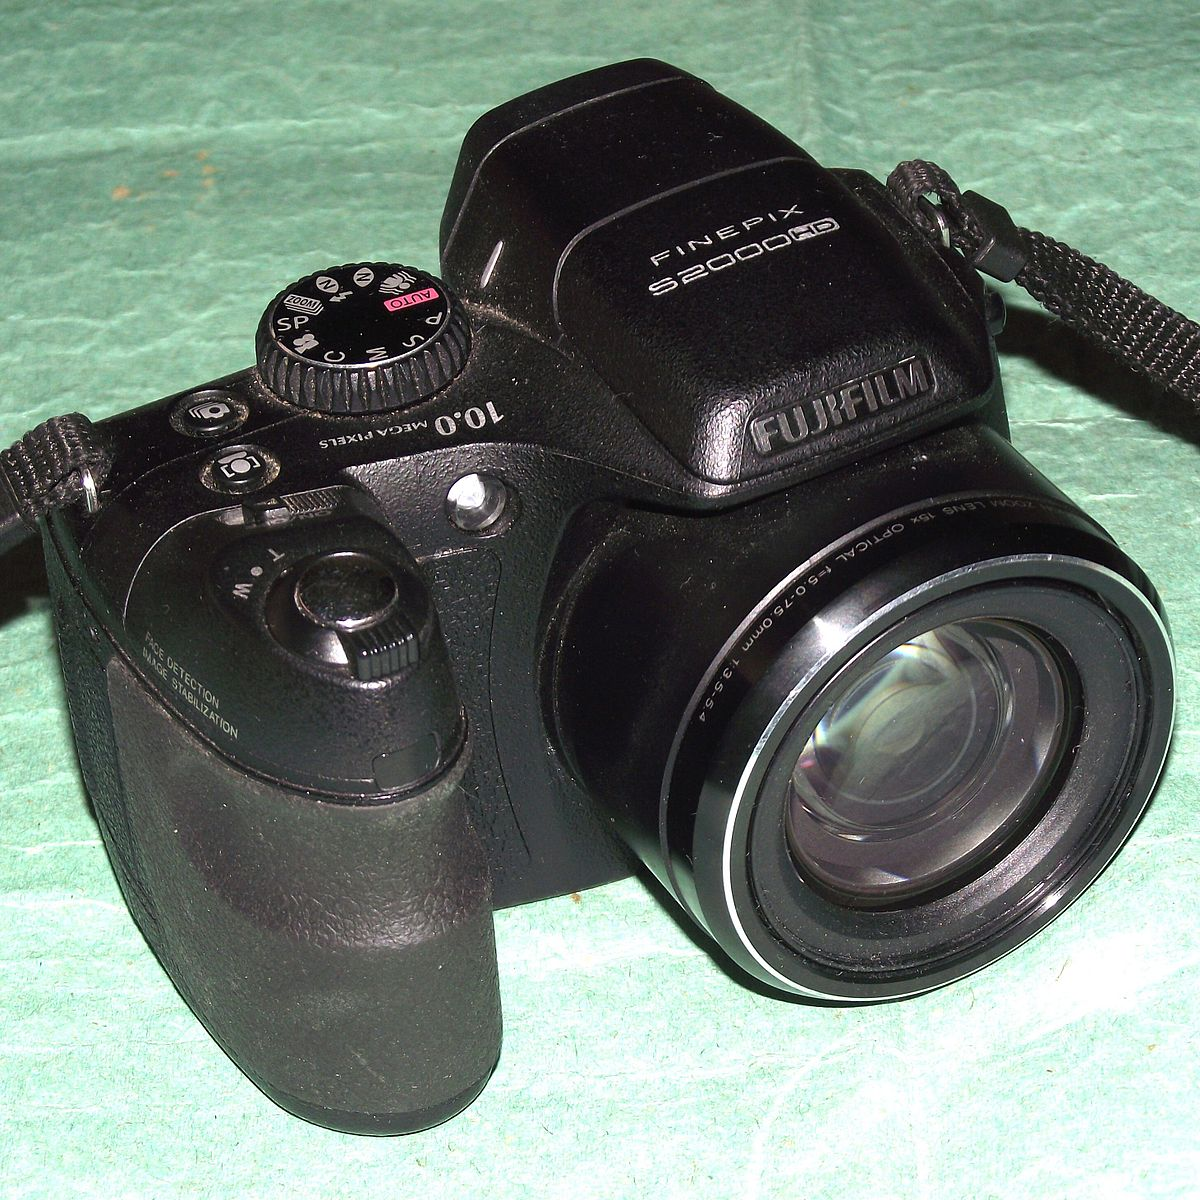 Fujifilm finepix s2000hd wikipedia for Fujifilm finepix s2000hd prix